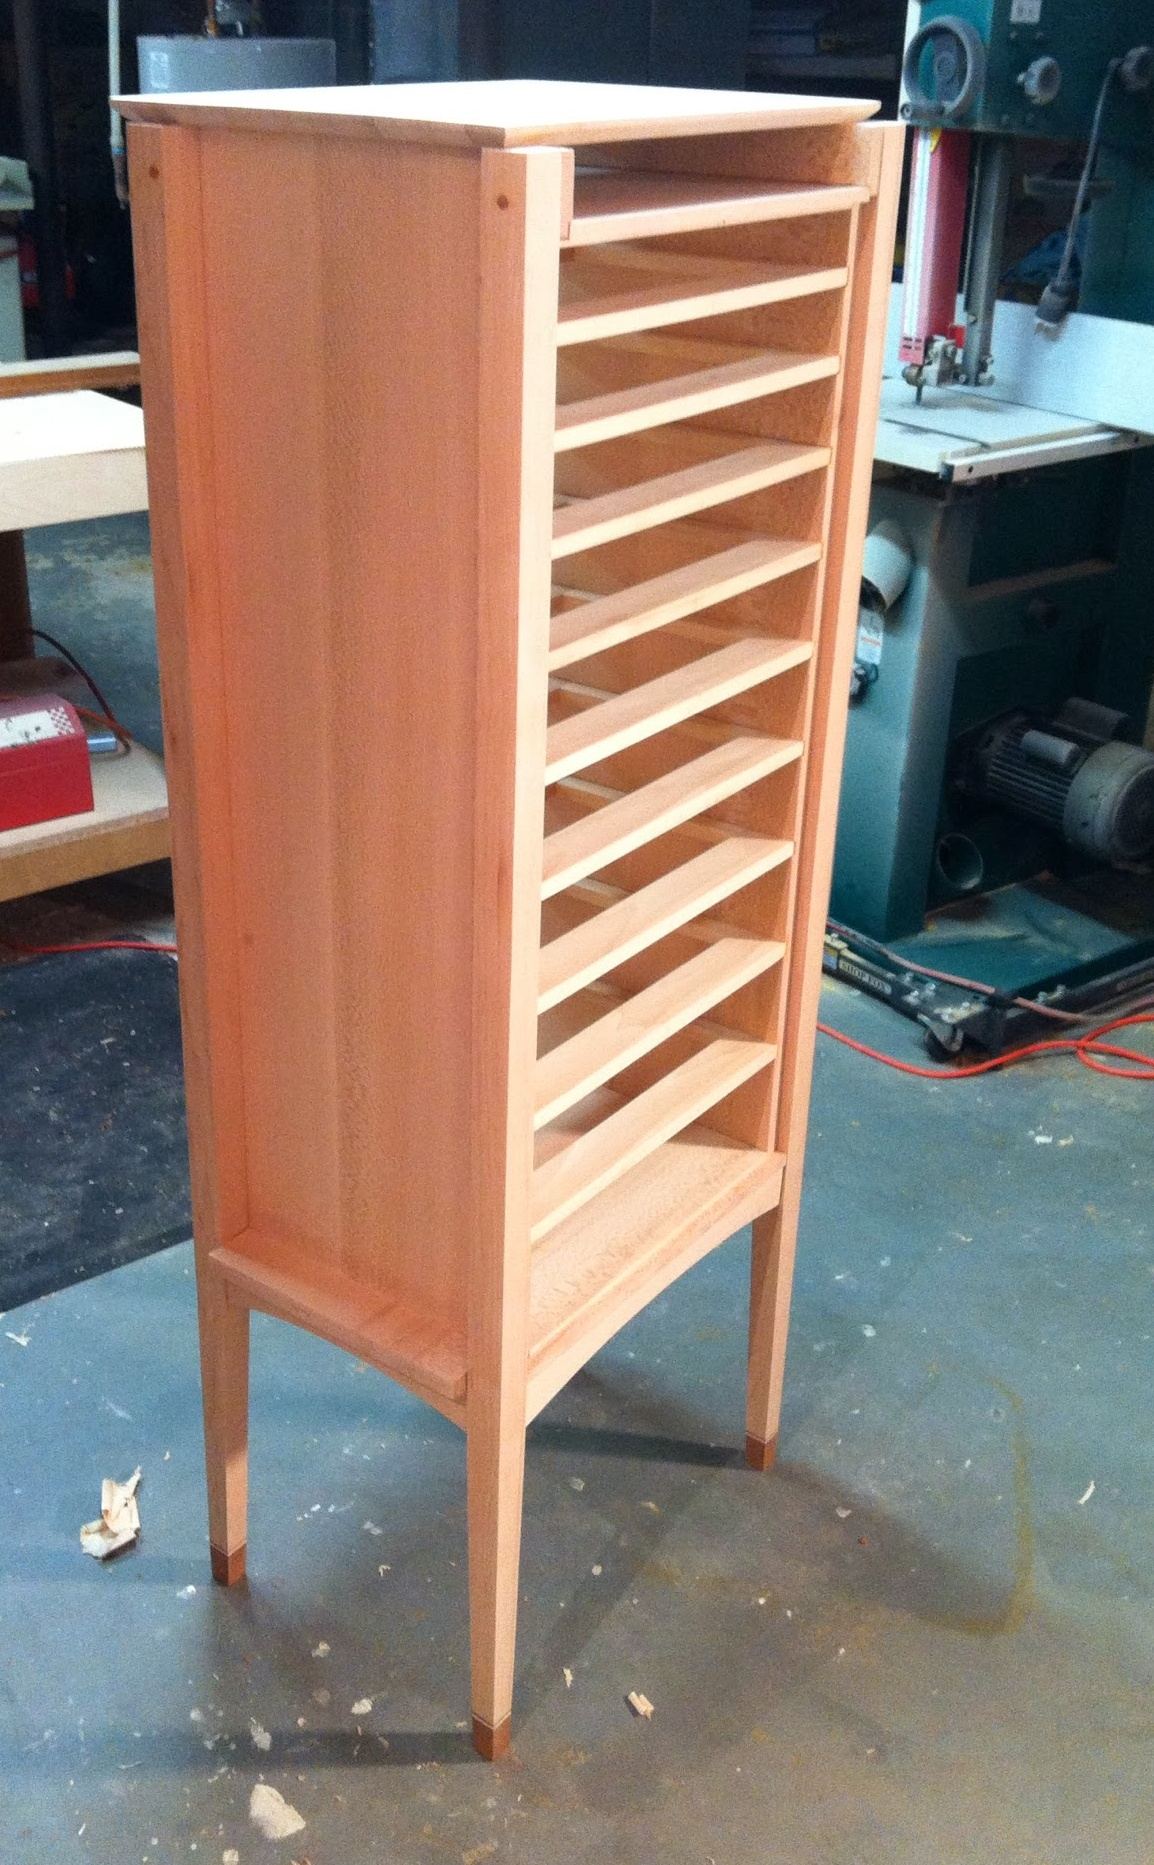 Rear view after the case glue-up. I'm starting to like her lines.